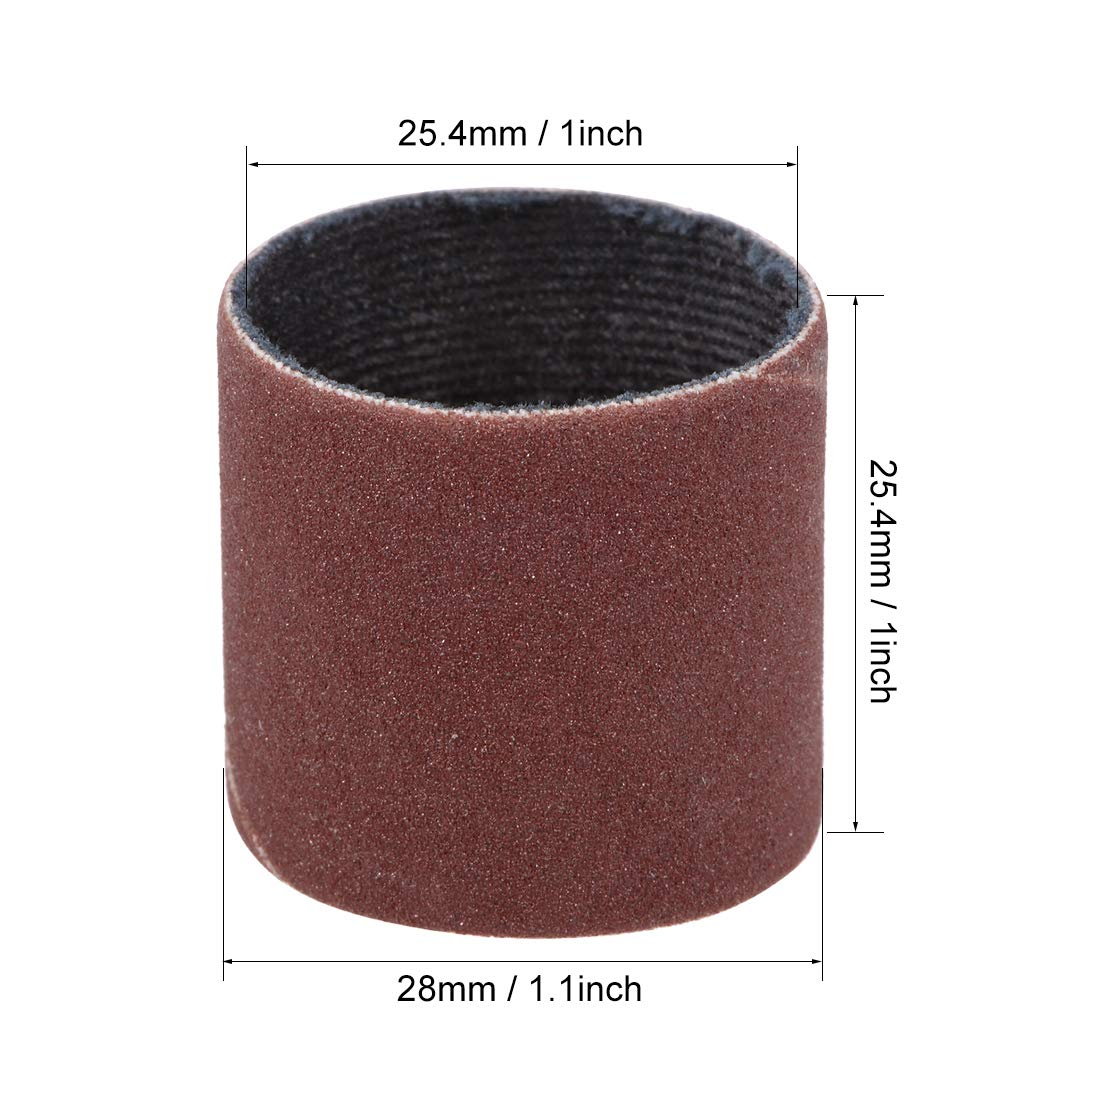 uxcell 1 inch x 1 inch Sanding Sleeves 320 Grits Sandpapers Band Drums 5 Pcs